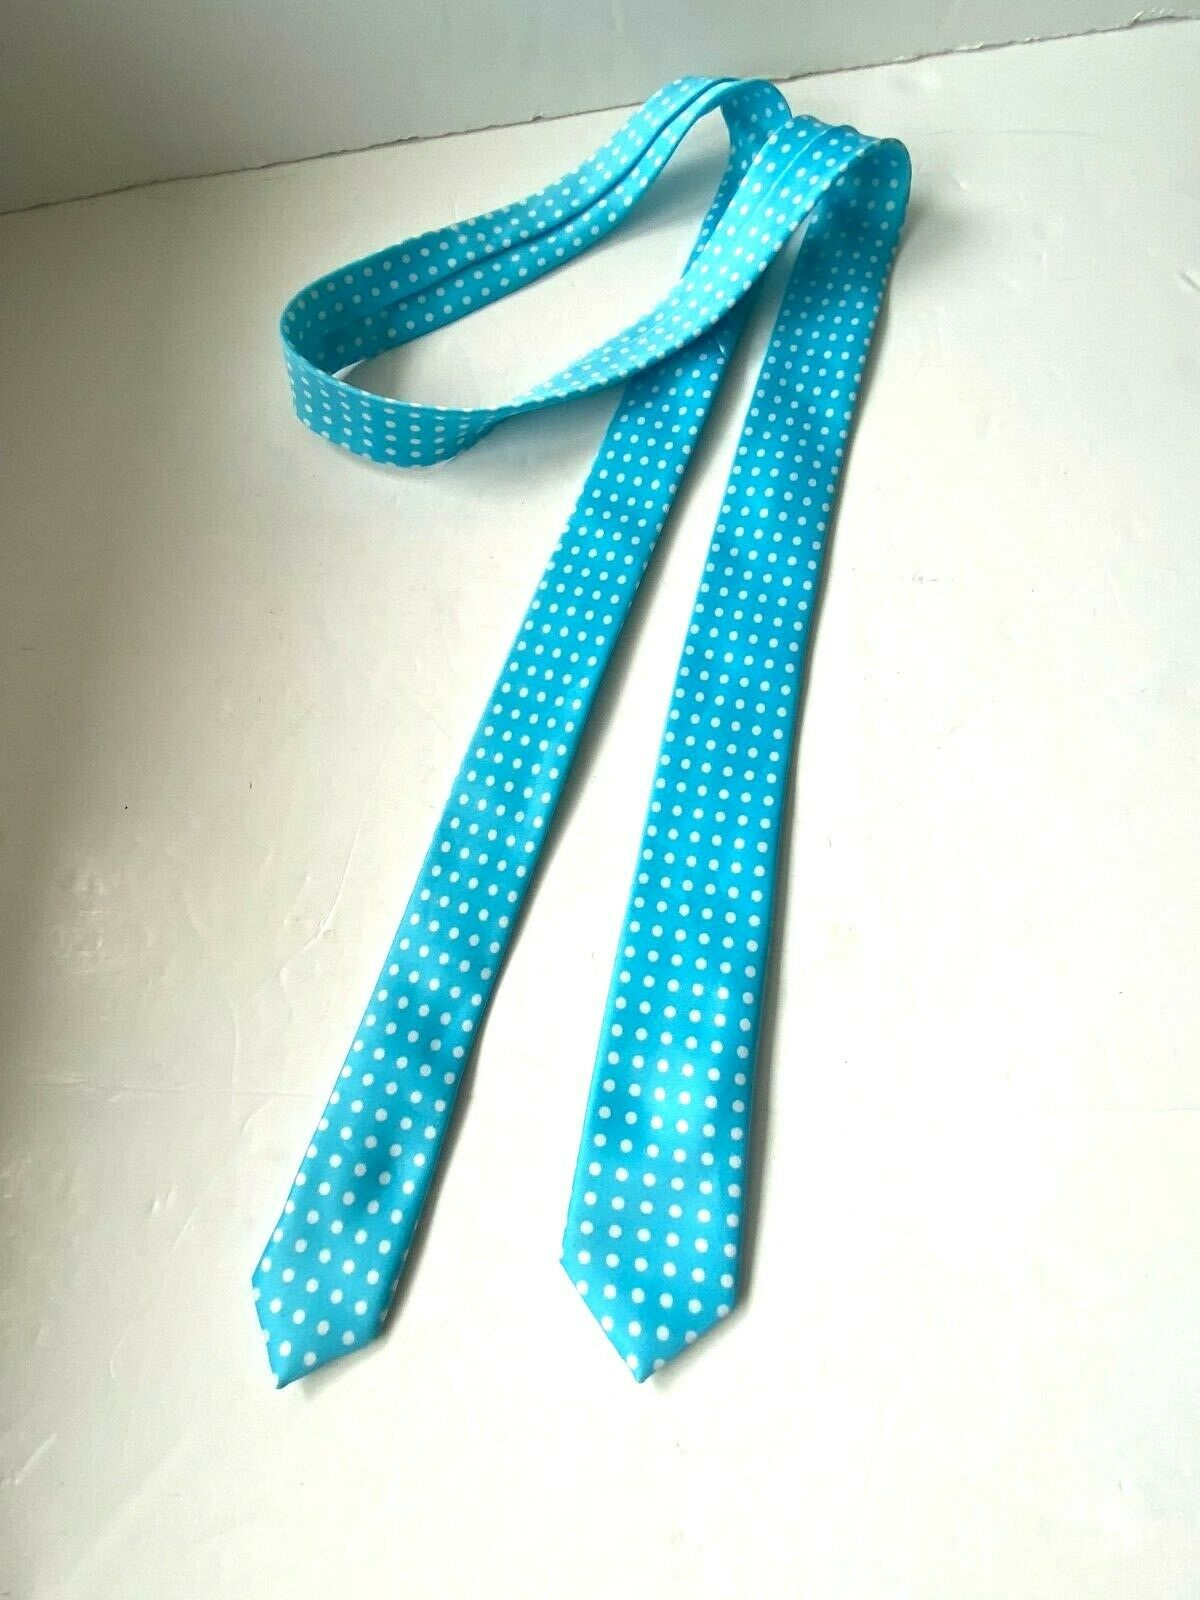 Ladies Light Blue Small Polka Dot TIE Spotty Thin Shape Pre Owned VGC Polyester